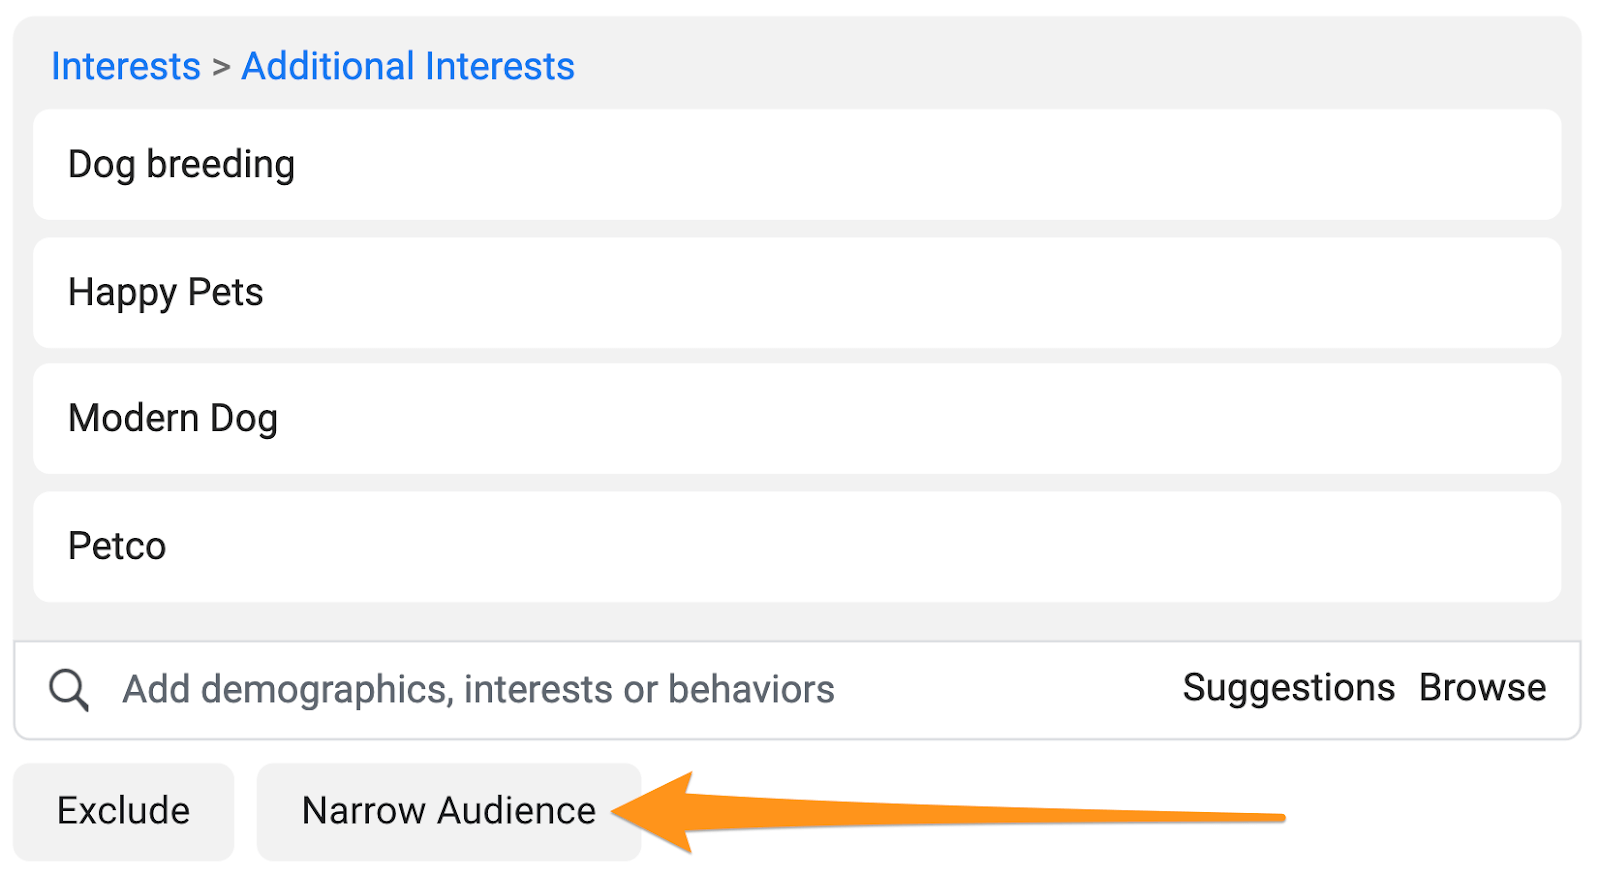 narrow audience interests